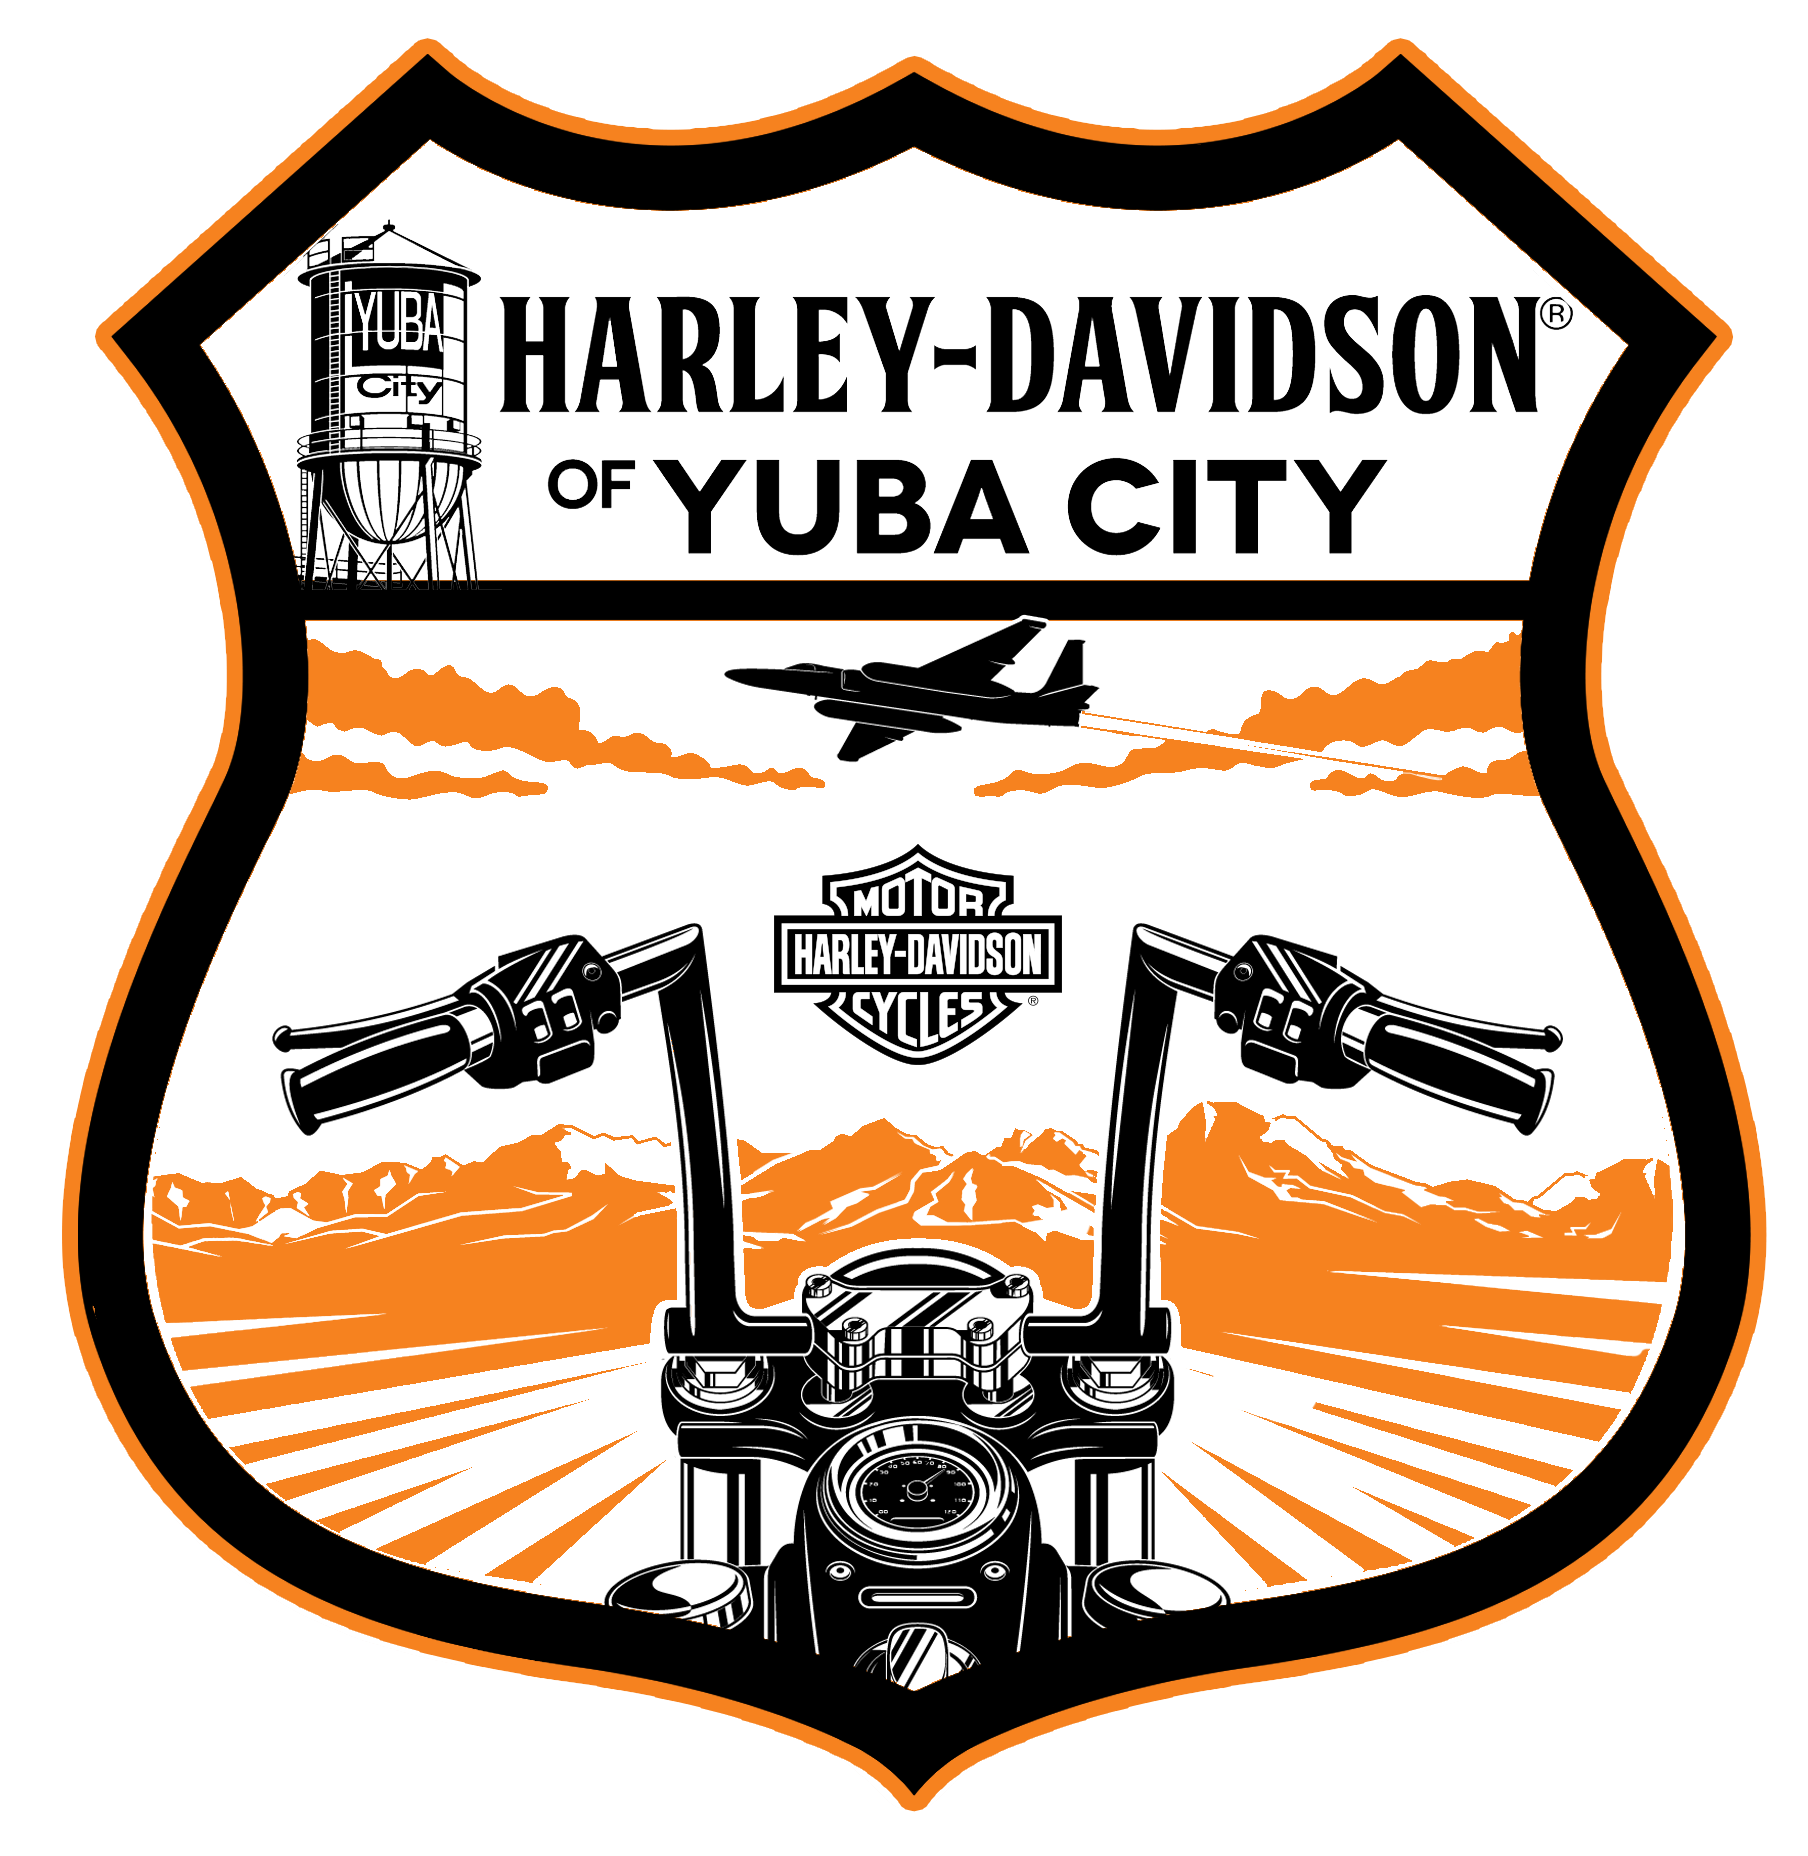 H-D OF YUBA CITY®